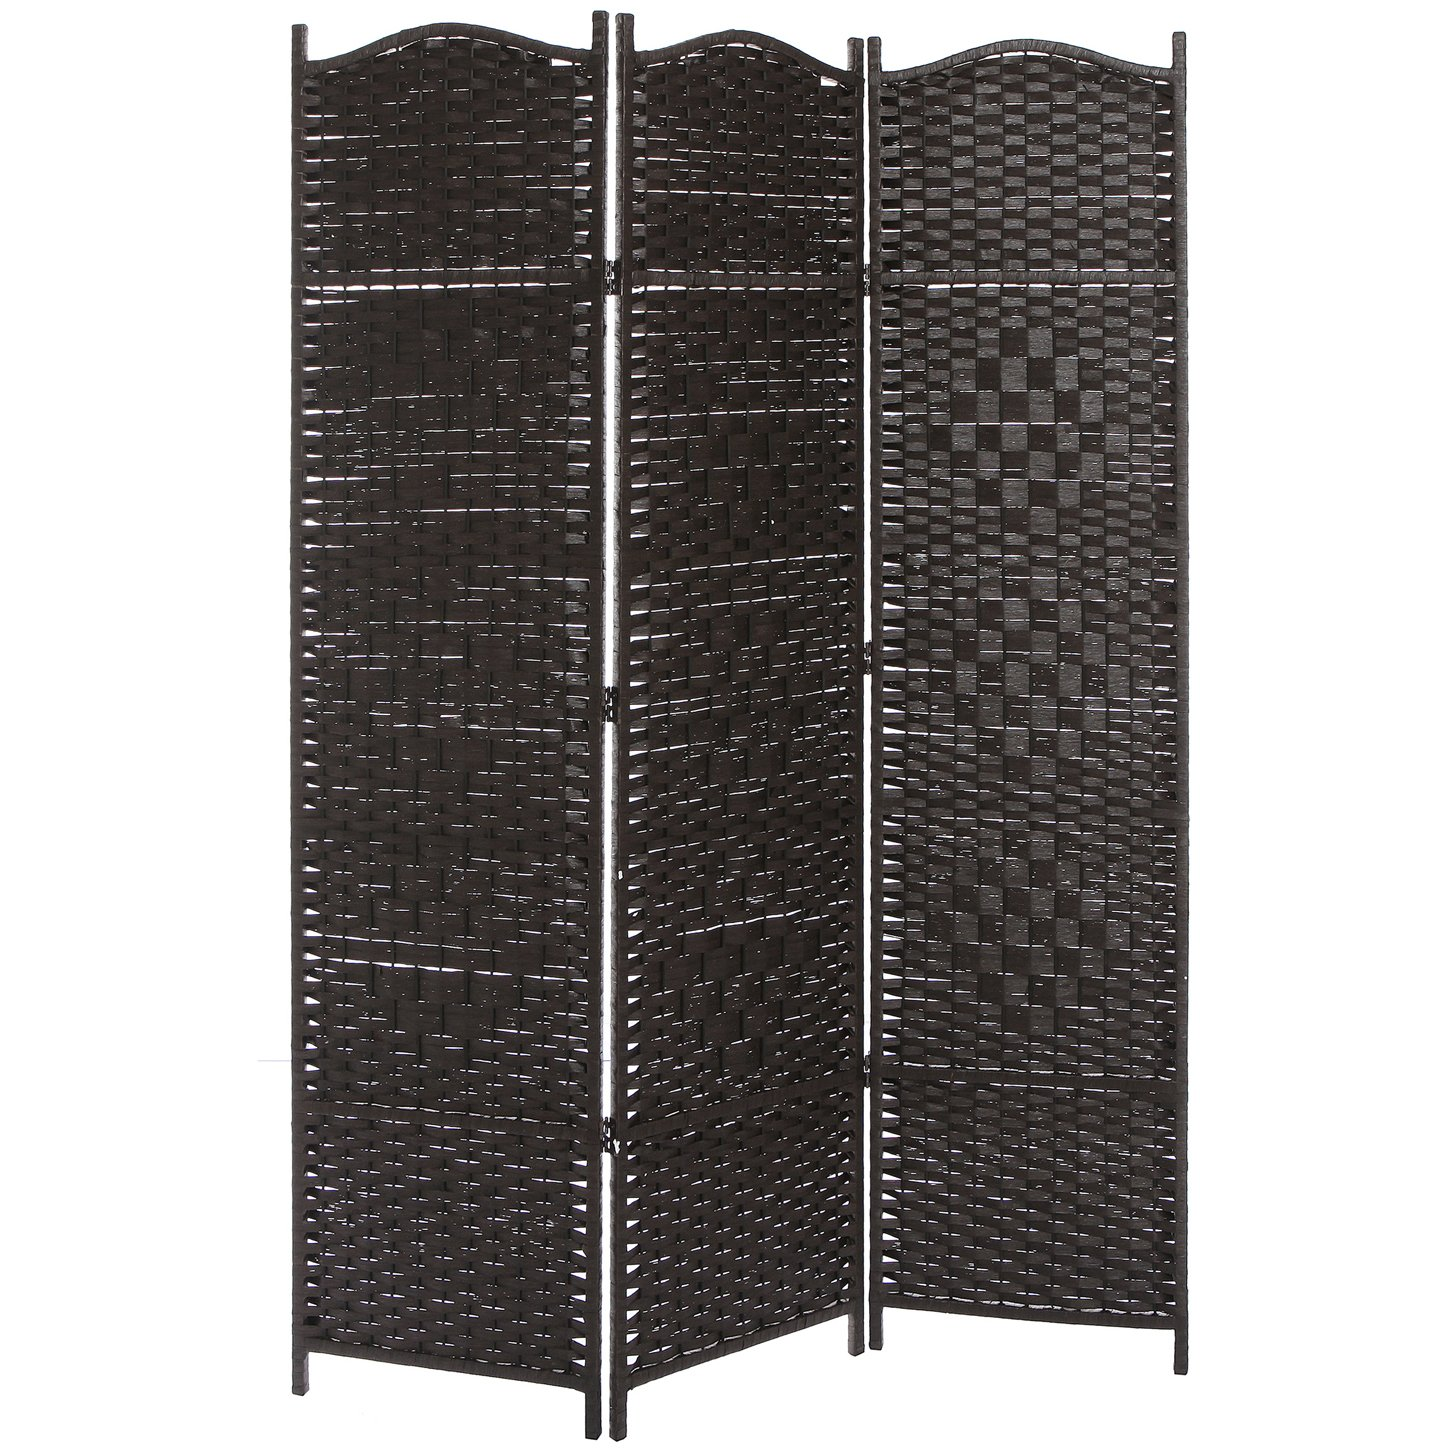 MyGift Wood & Bamboo Woven 3-Panel Room Divider, Indoor Folding Screen with Dual-Sided Hinges by MyGift